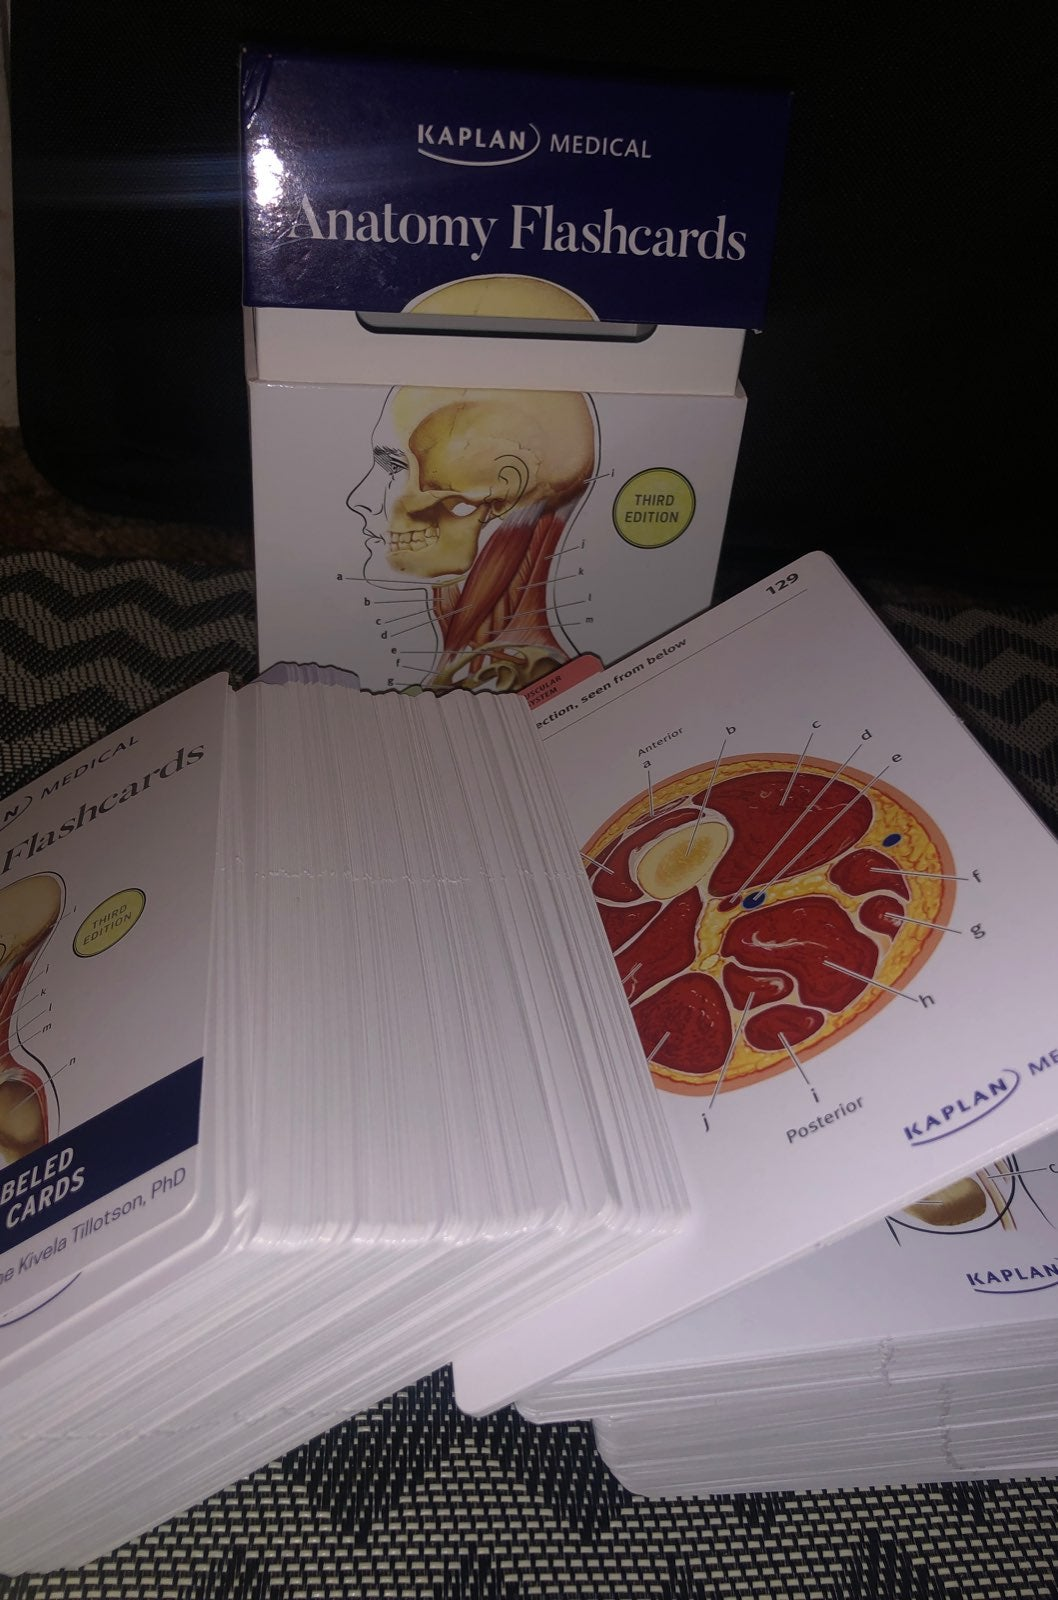 Kaplan Medical Anatomy Flashcards